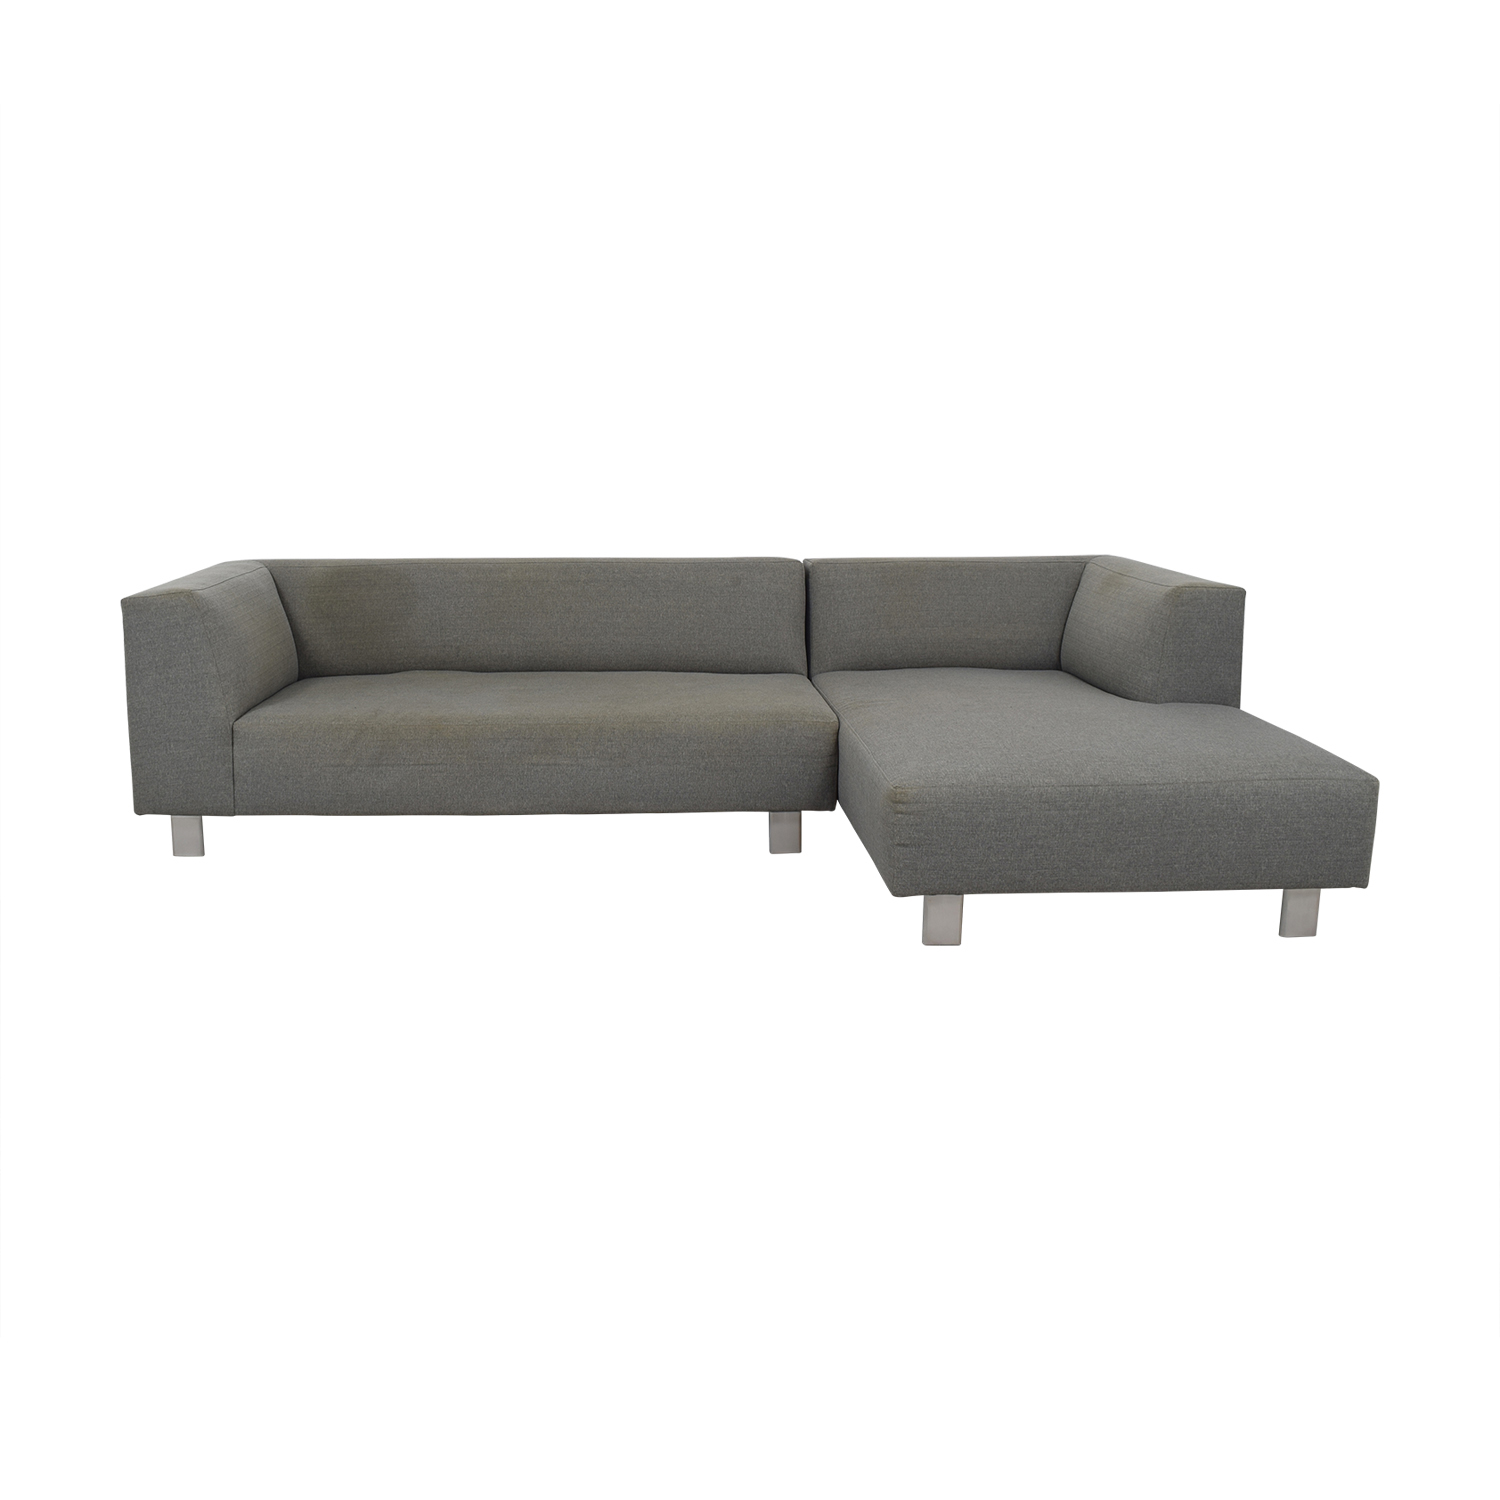 Room & Board Room & Board Grey Chaise Sectional nj